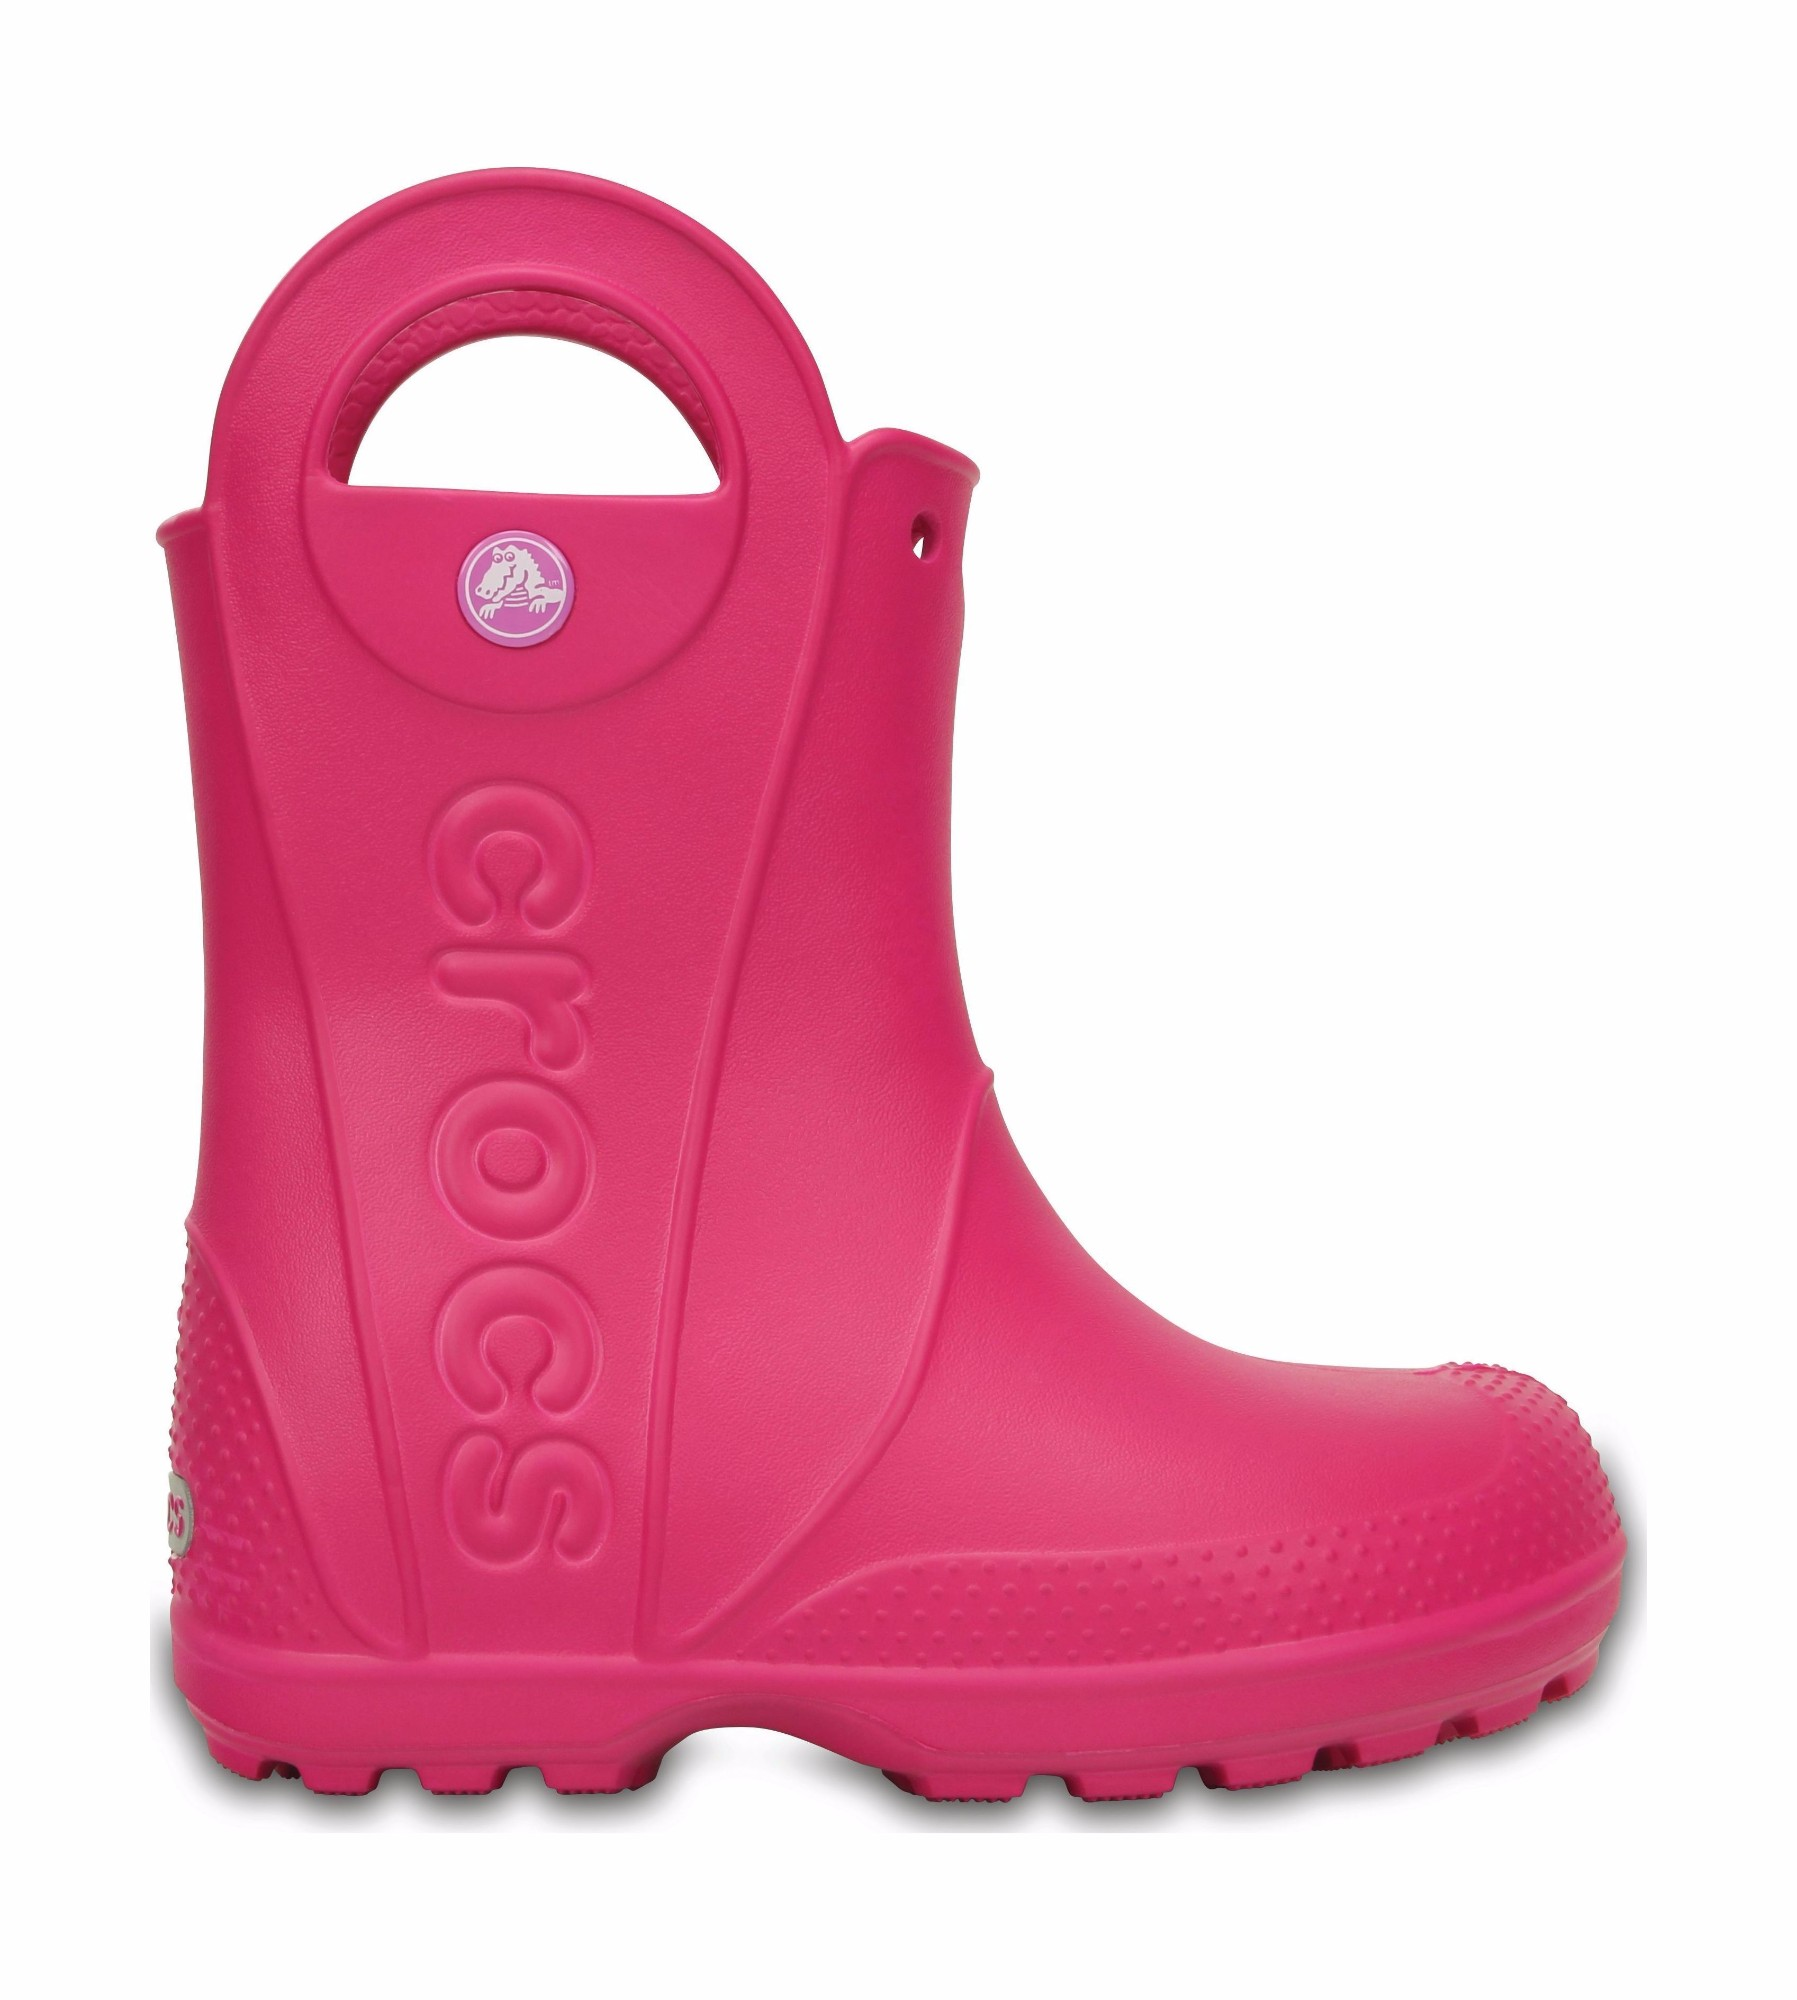 Crocs™ Kids' Handle It Rain Boot Candy Pink 32